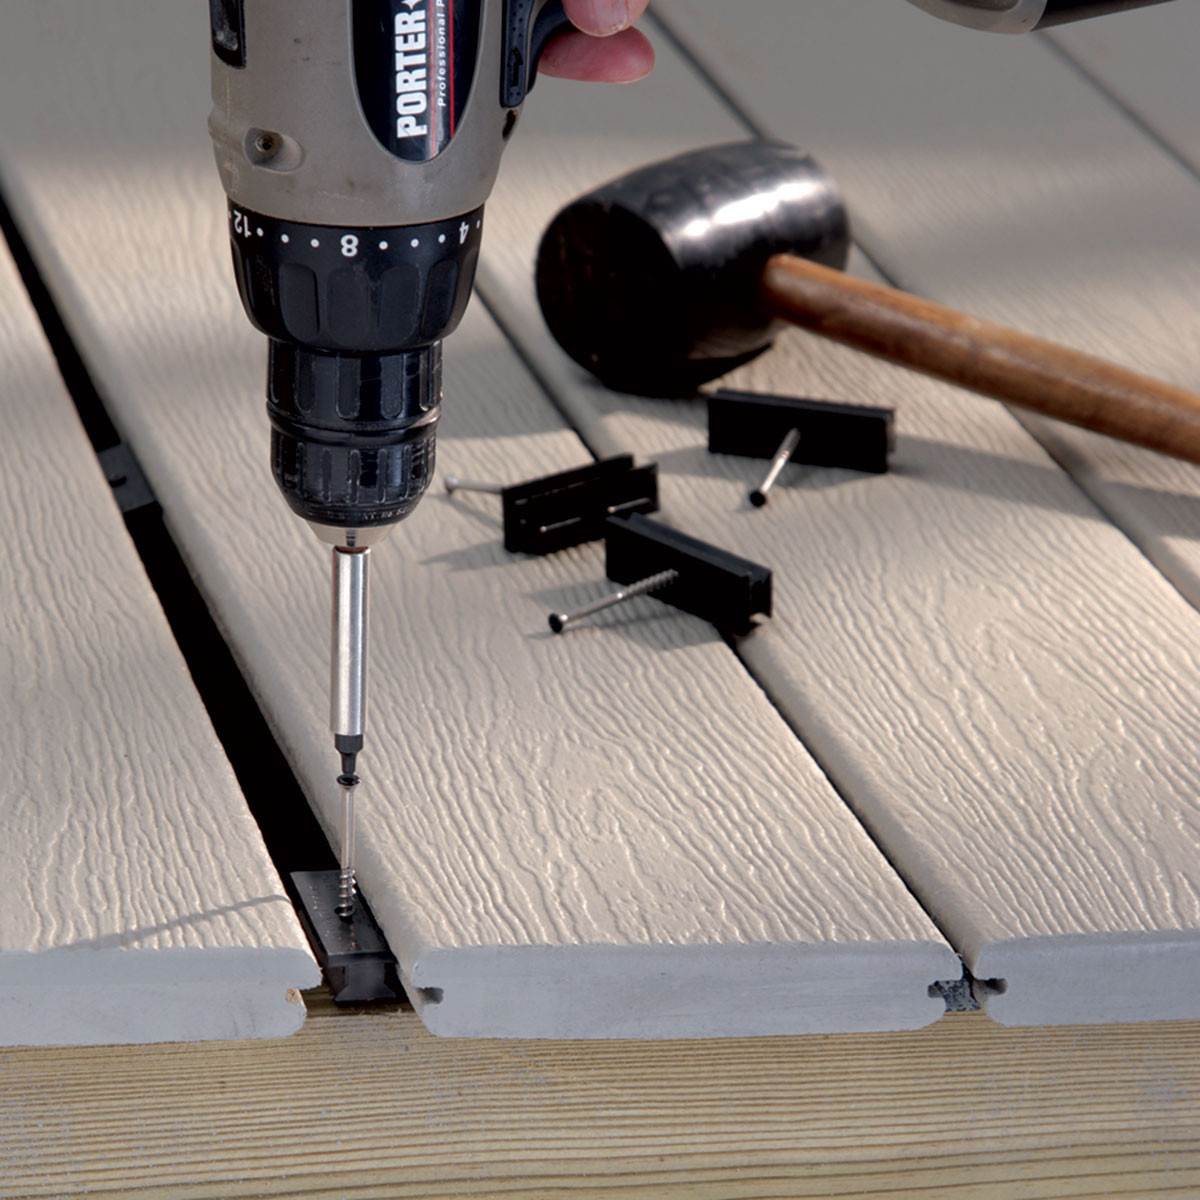 Incredible strength that's easy to install, the DuraLife Fastenator Hidden Fastening System gives a hold you can trust.